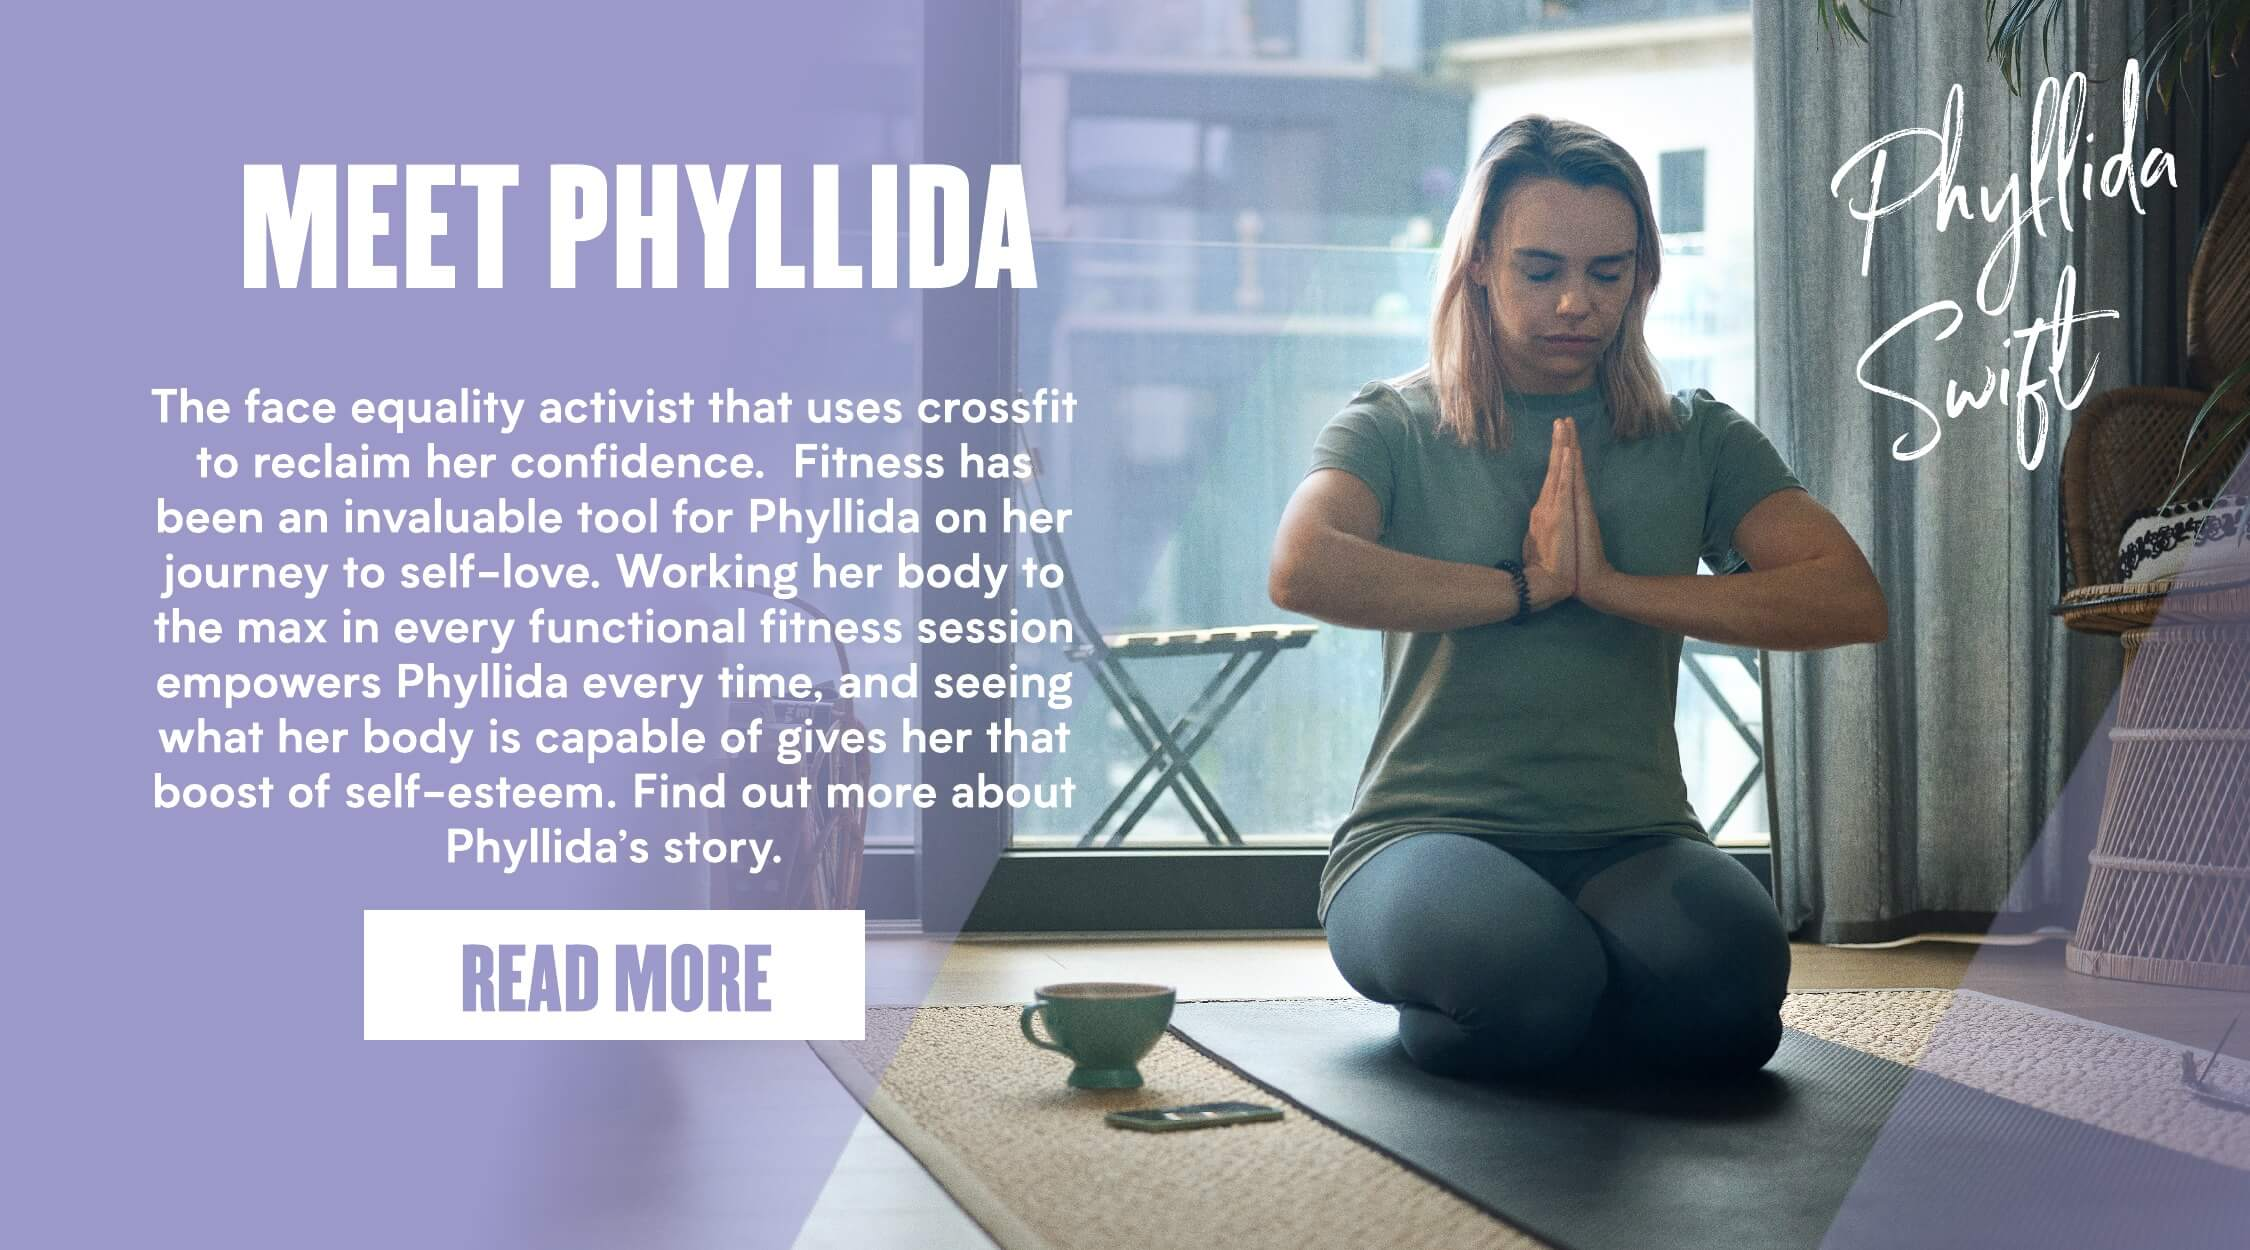 https://www.myprotein.com/thezone/our-ambassadors/meet-phyllida-activist-by-night-050721/